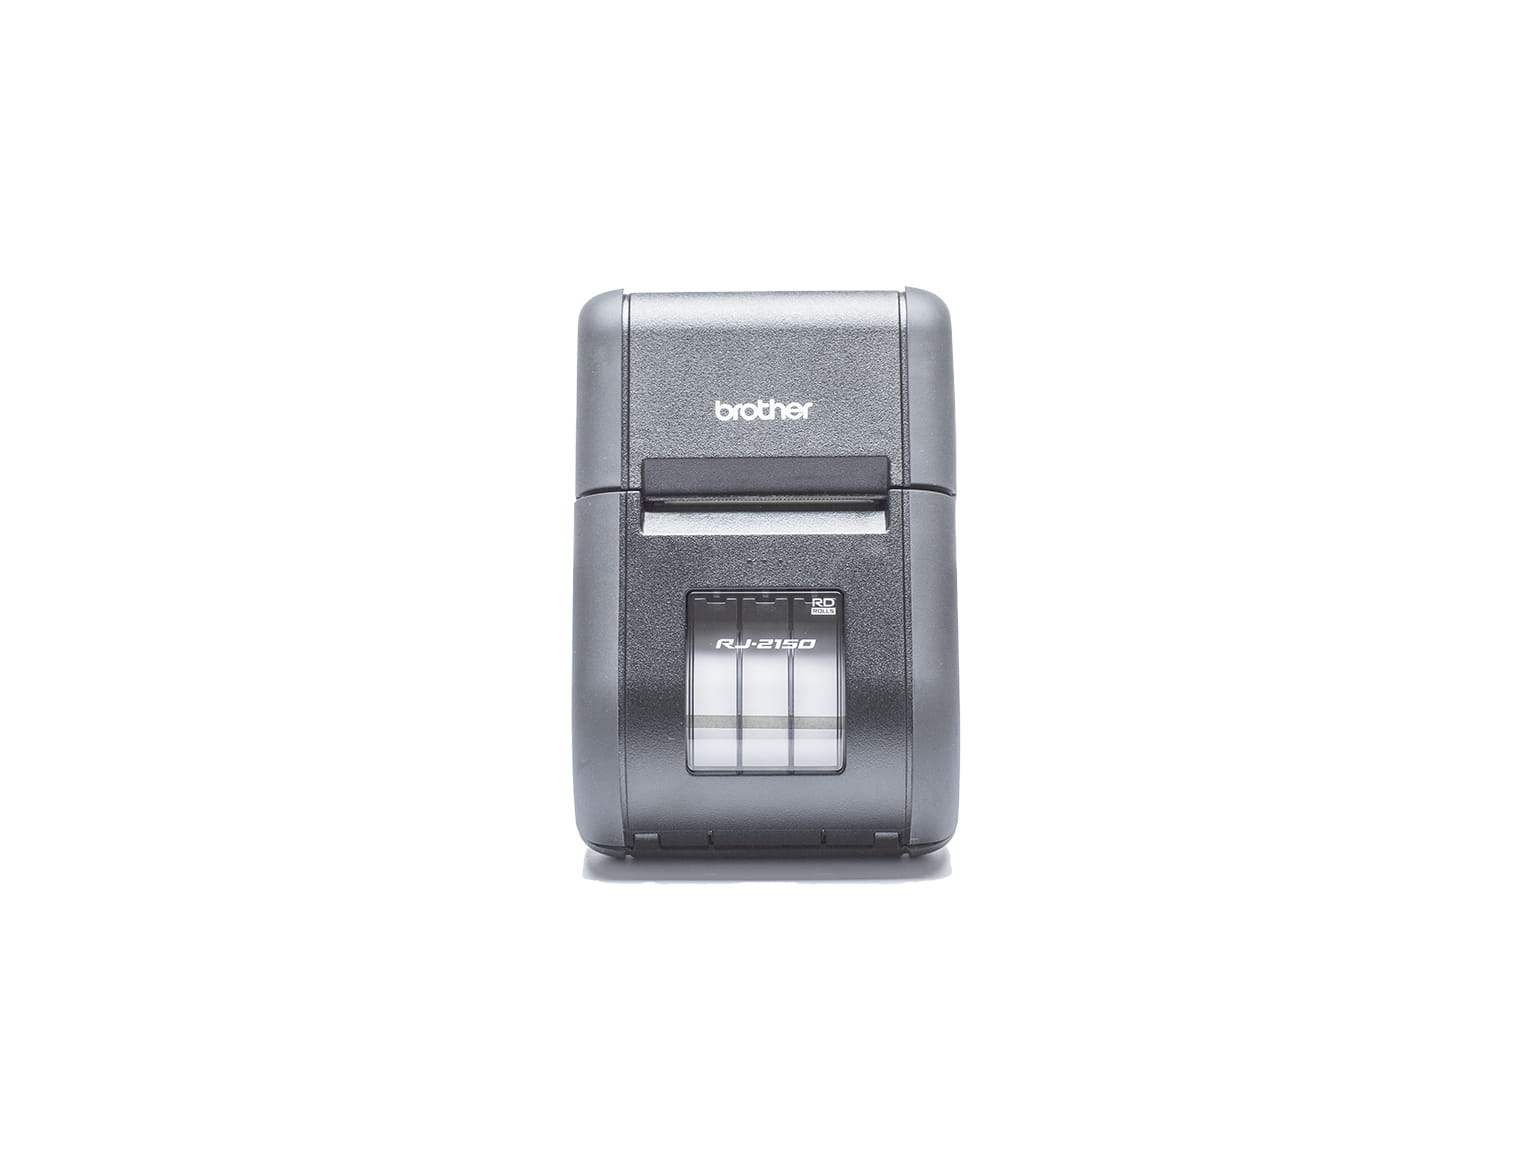 Brother RJ series portable label printer